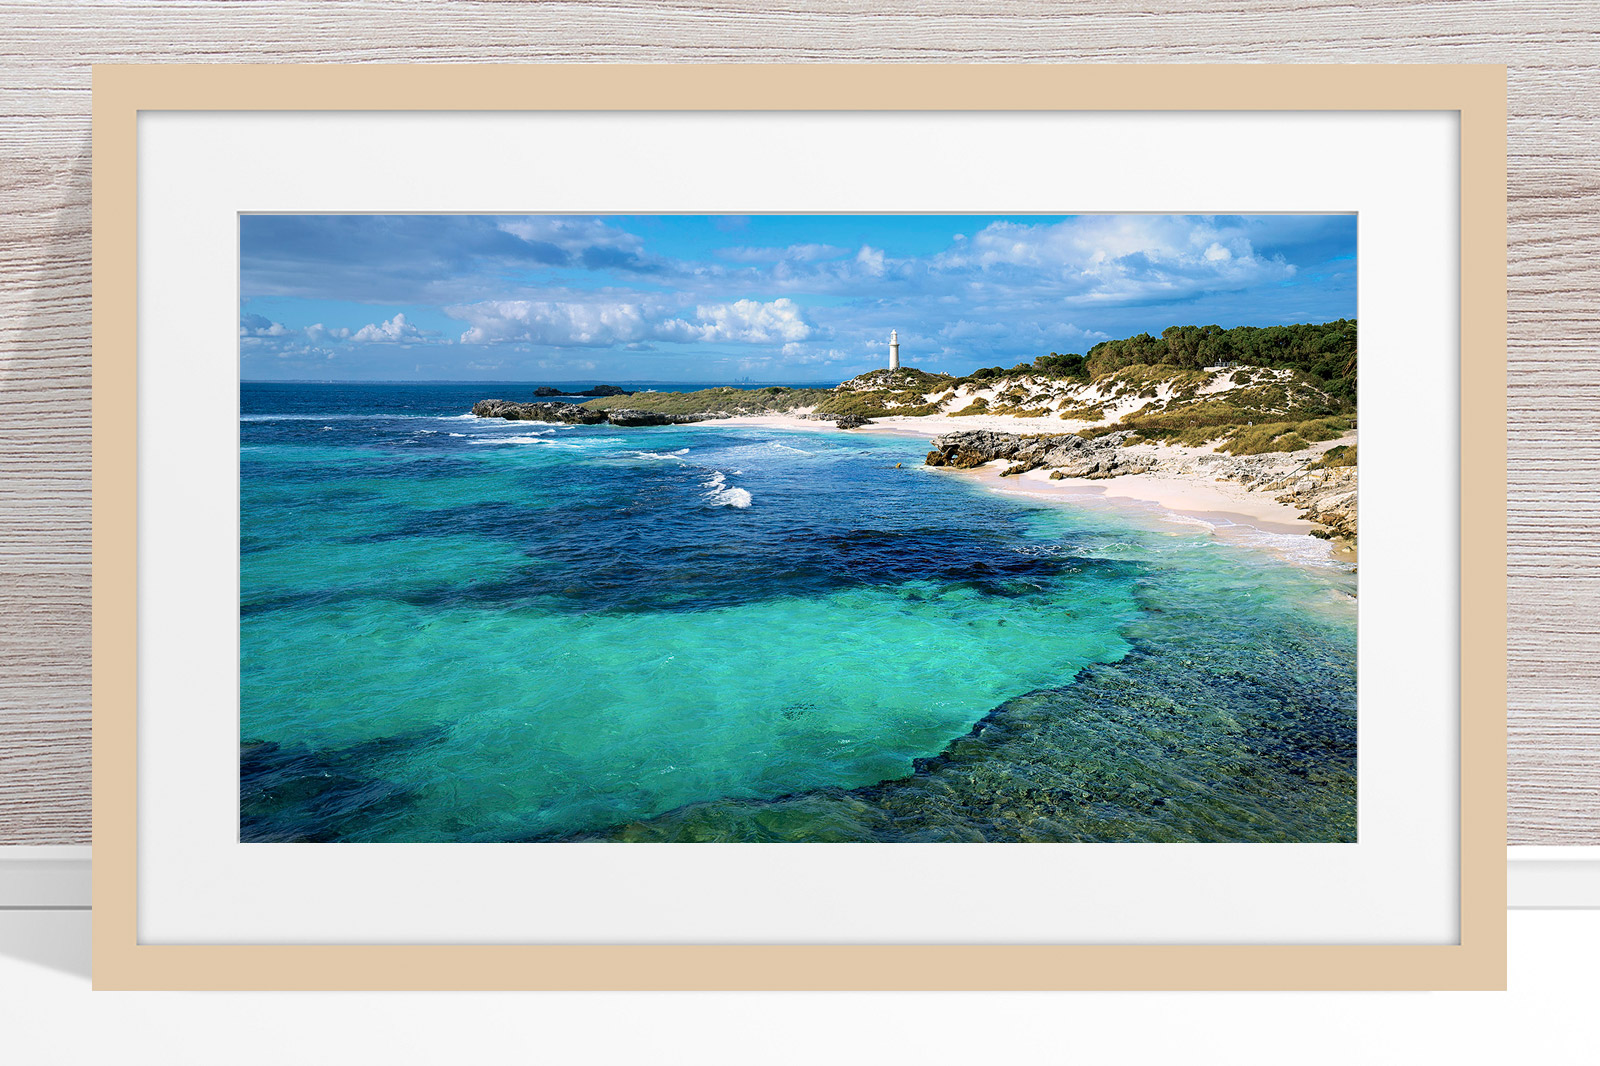 024 - Jason Mazur-'The Basin, Rottnest' Light Frame